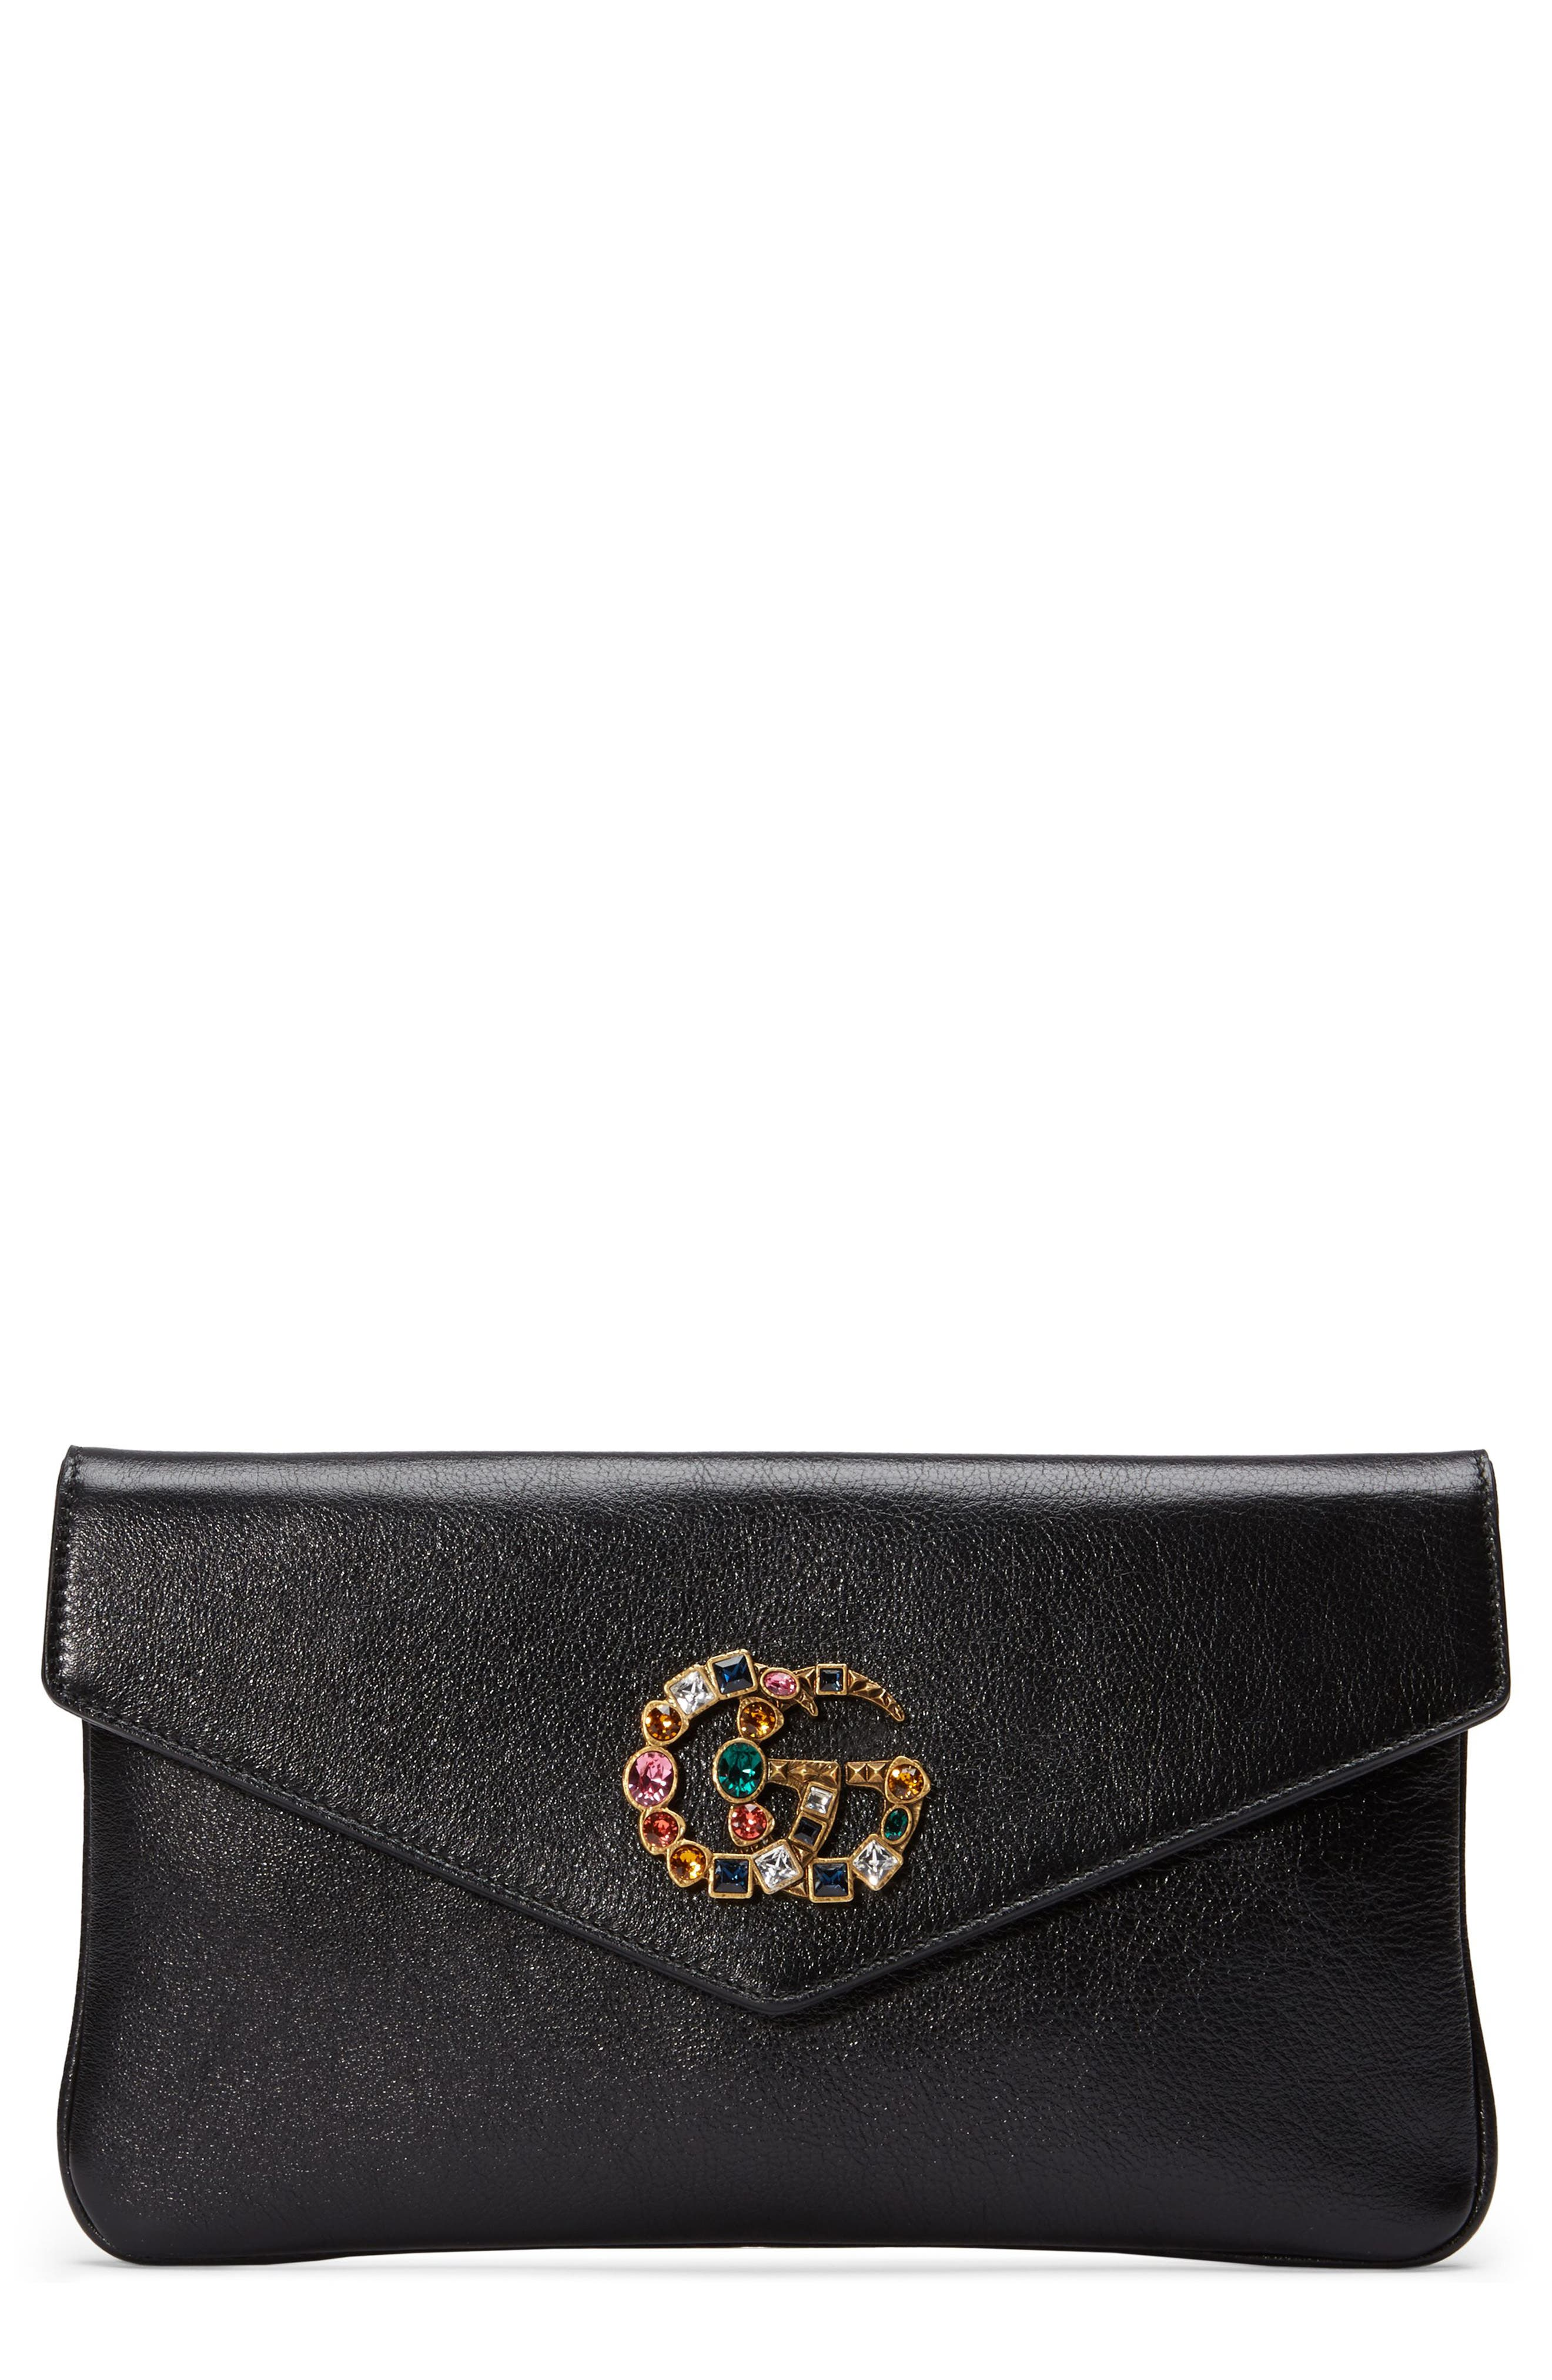 Broadway Crystal GG Leather Envelope Clutch,                             Main thumbnail 1, color,                             001